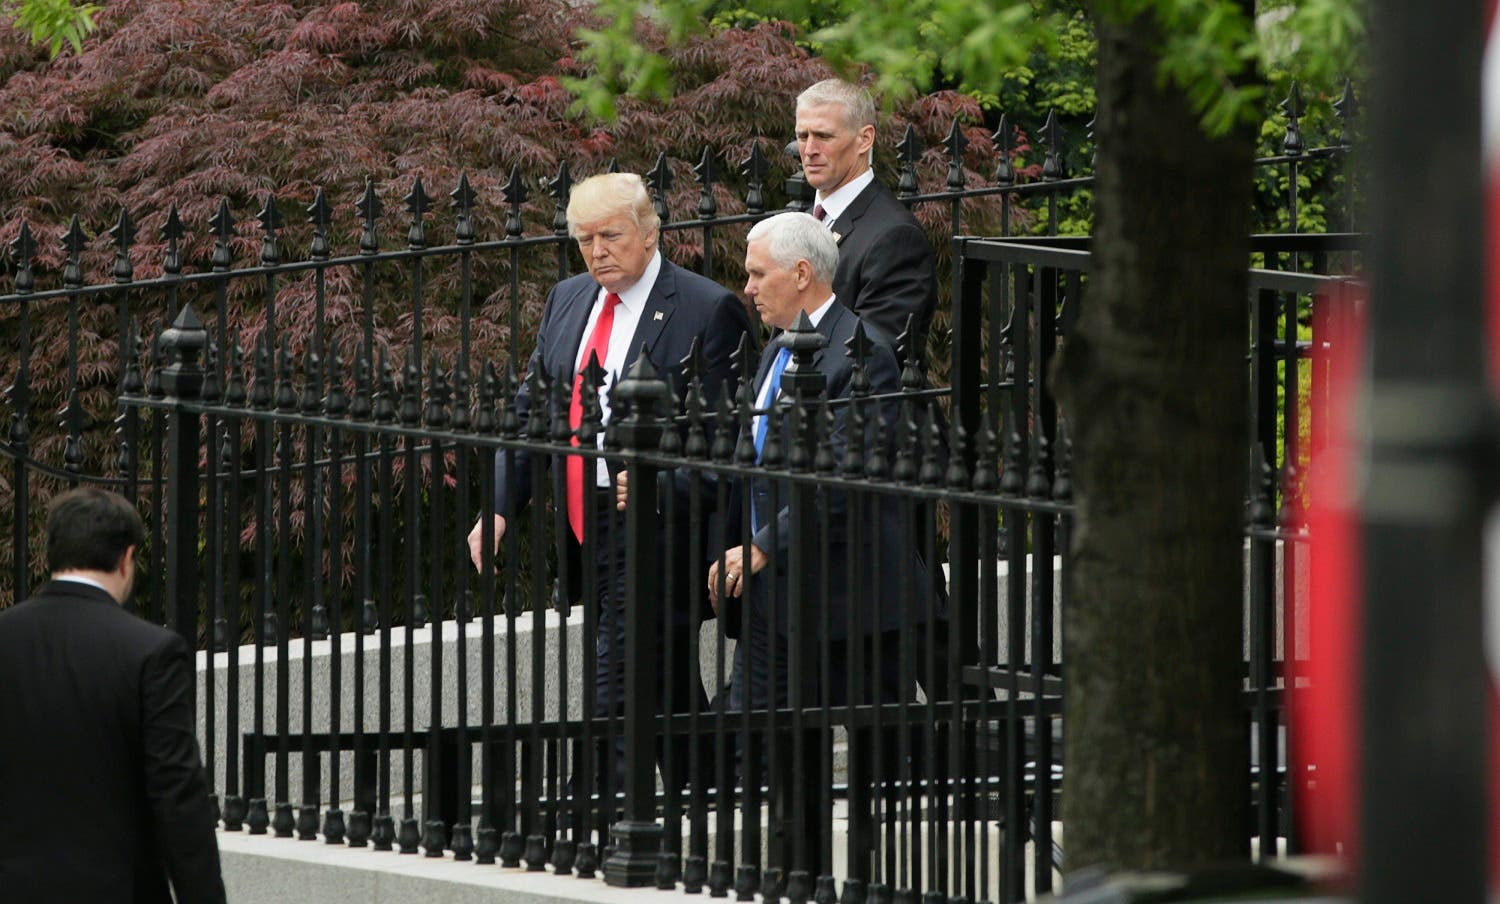 President Donald Trump and Vice President Mike Pence leave a briefing for members of the US Senate on North Korea at the White House in Washington on April 26, 2017. (Reuters)